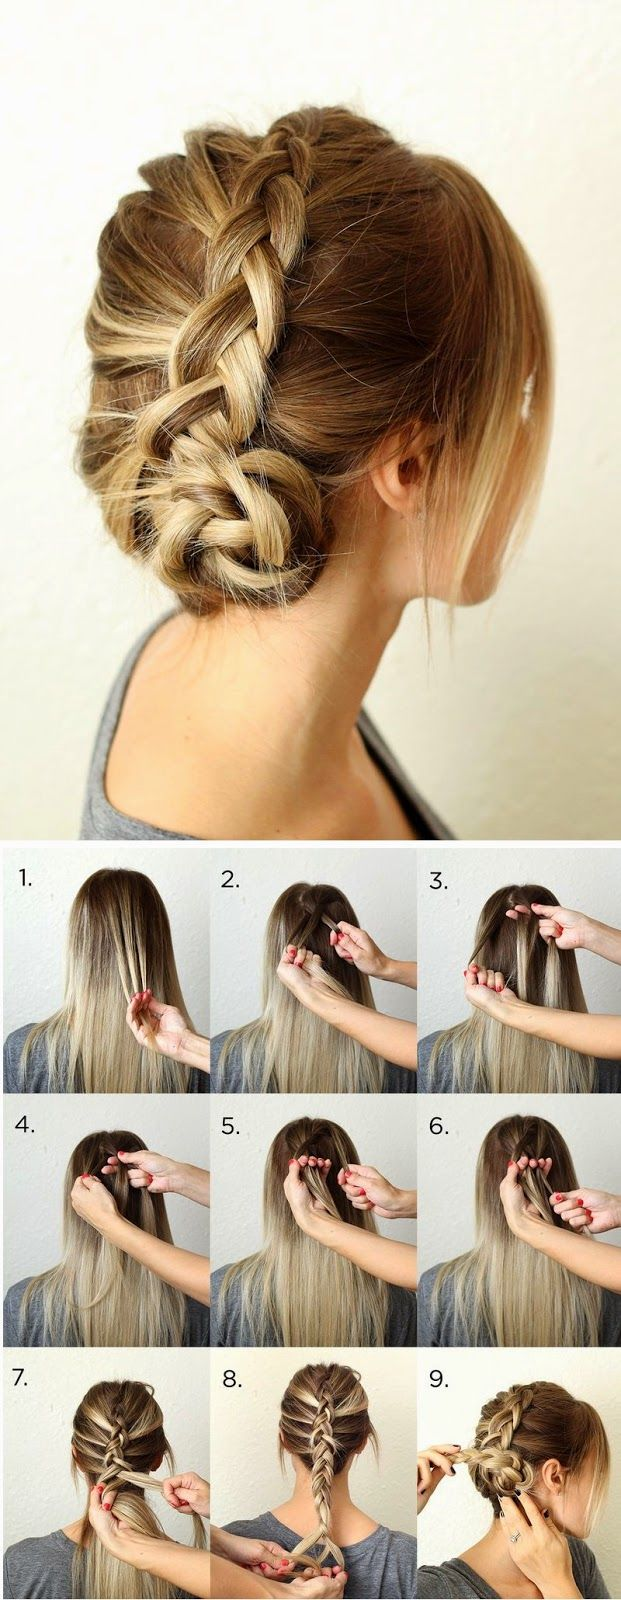 How To : Simple Dutch Braid